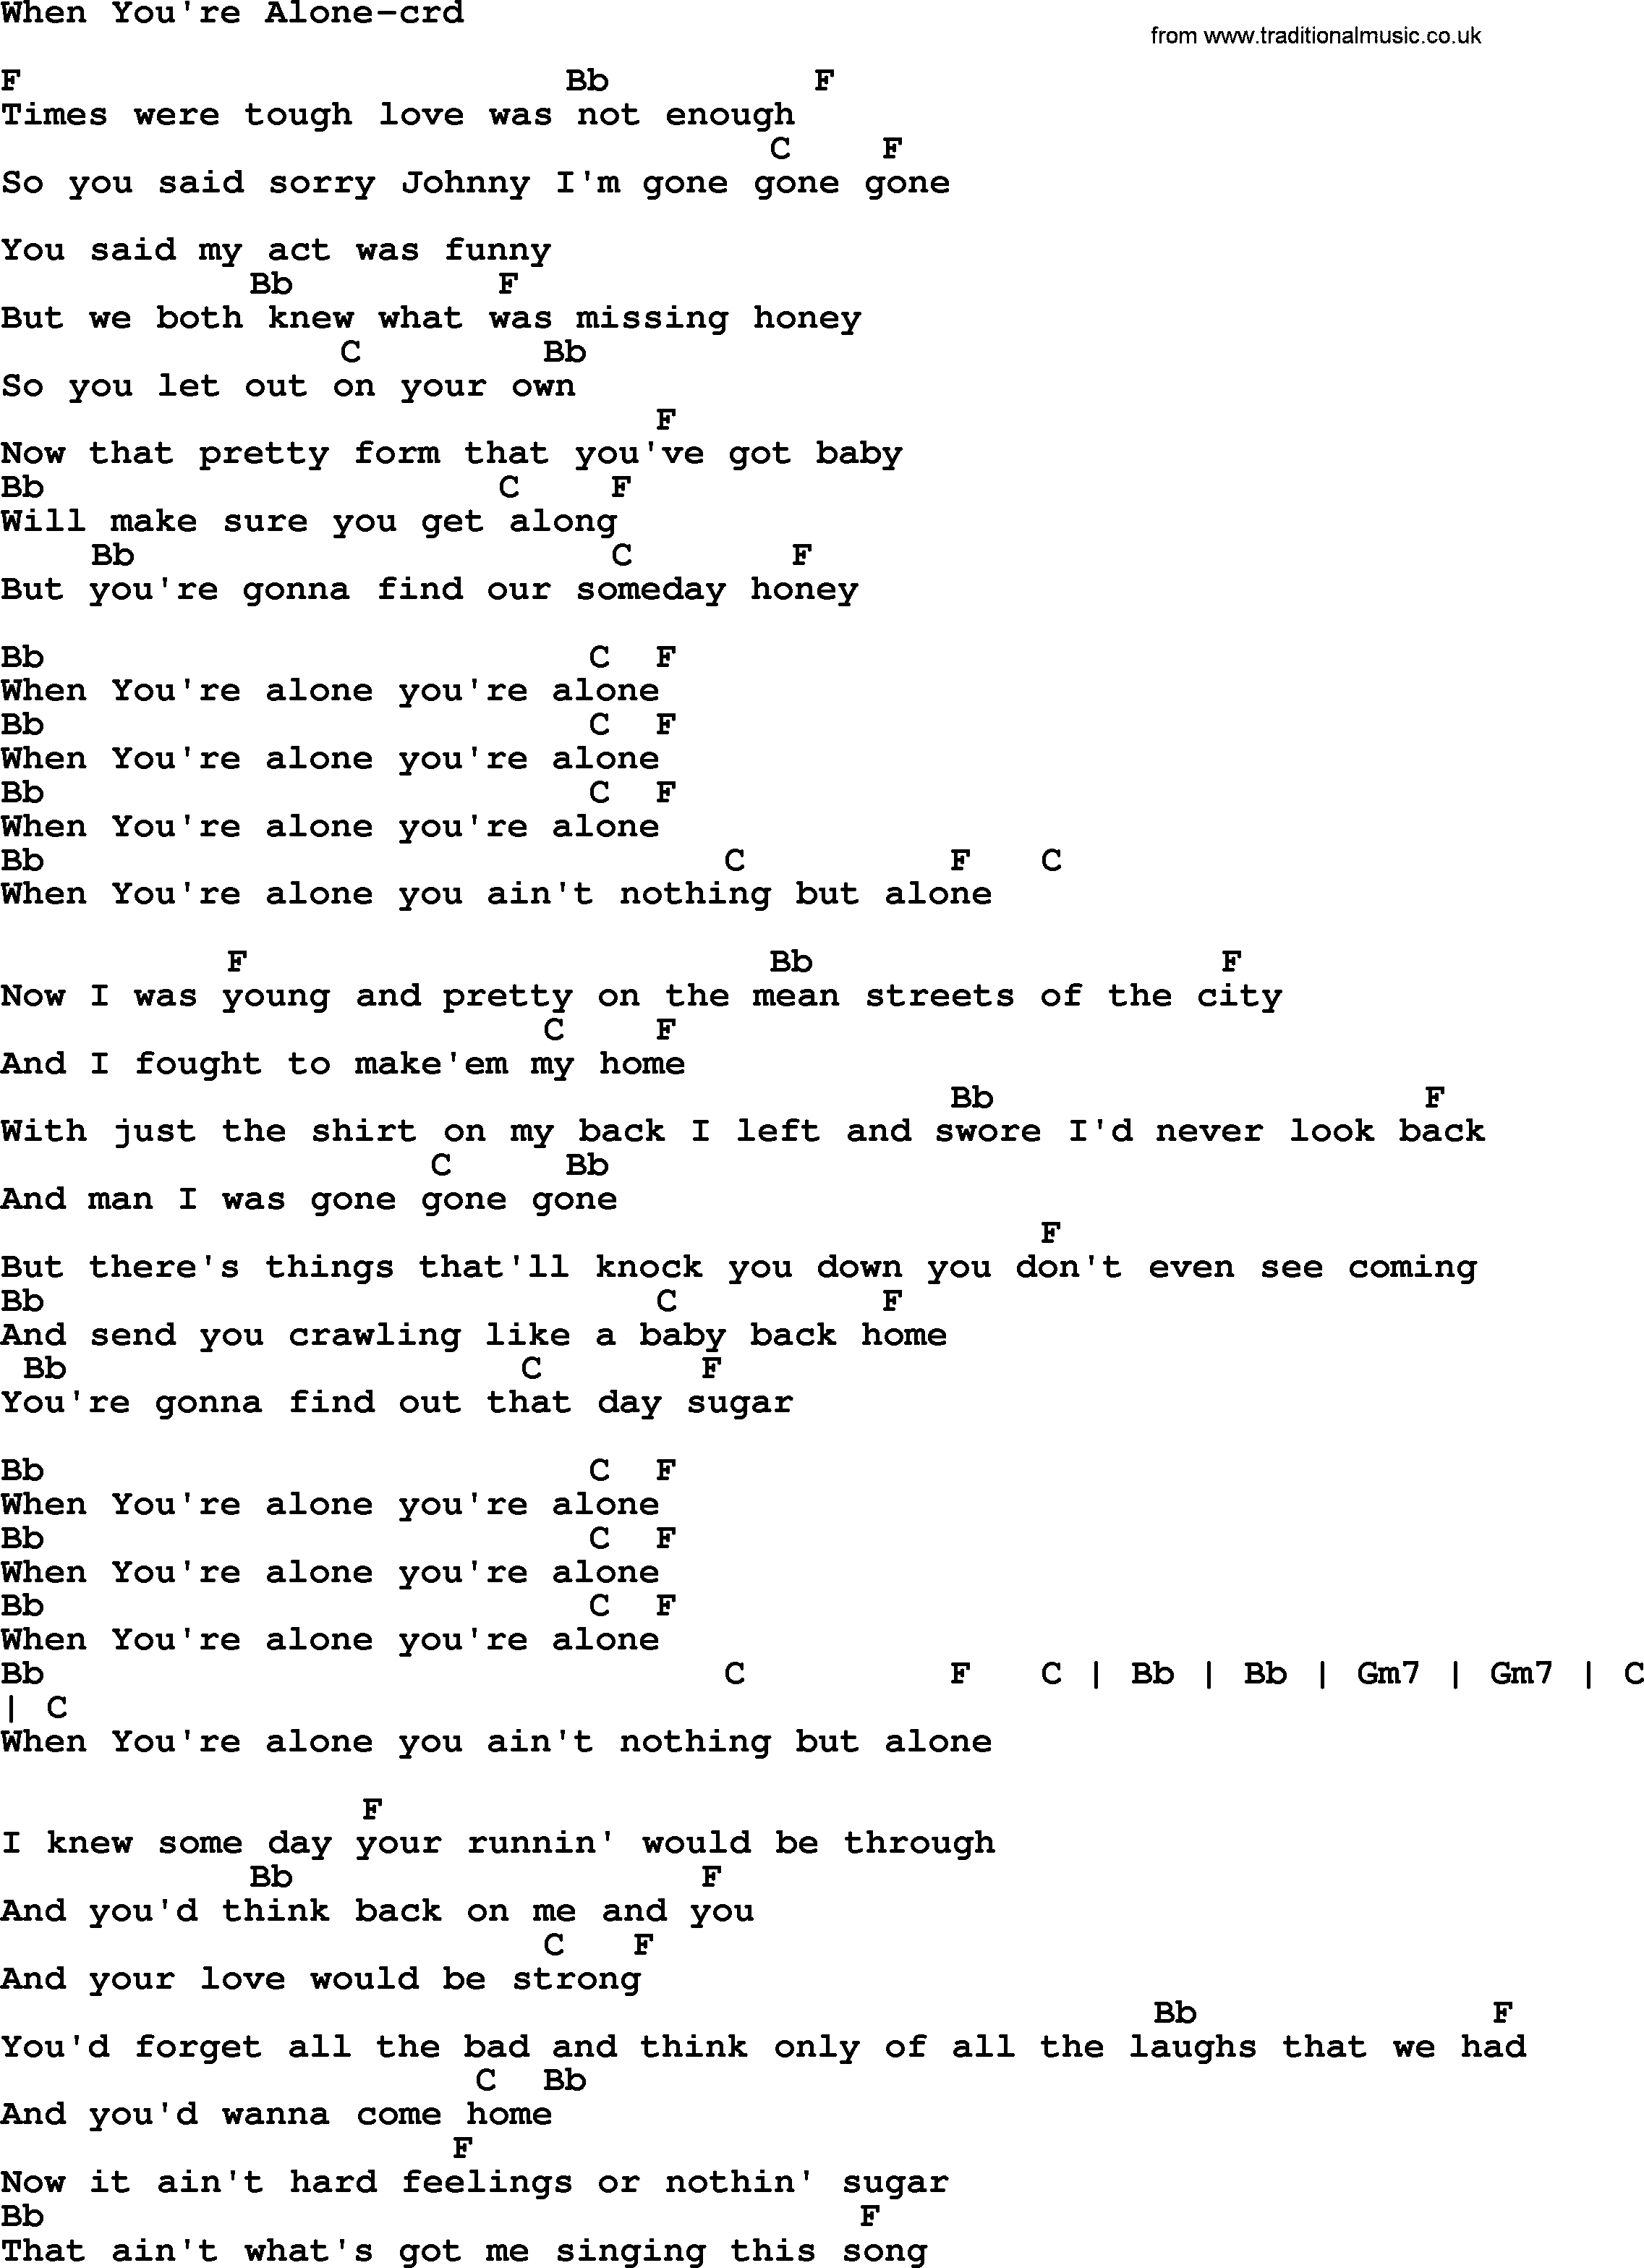 Springsteen song when youre alone lyrics and chords bruce springsteen song when youre alone lyrics and chords hexwebz Image collections